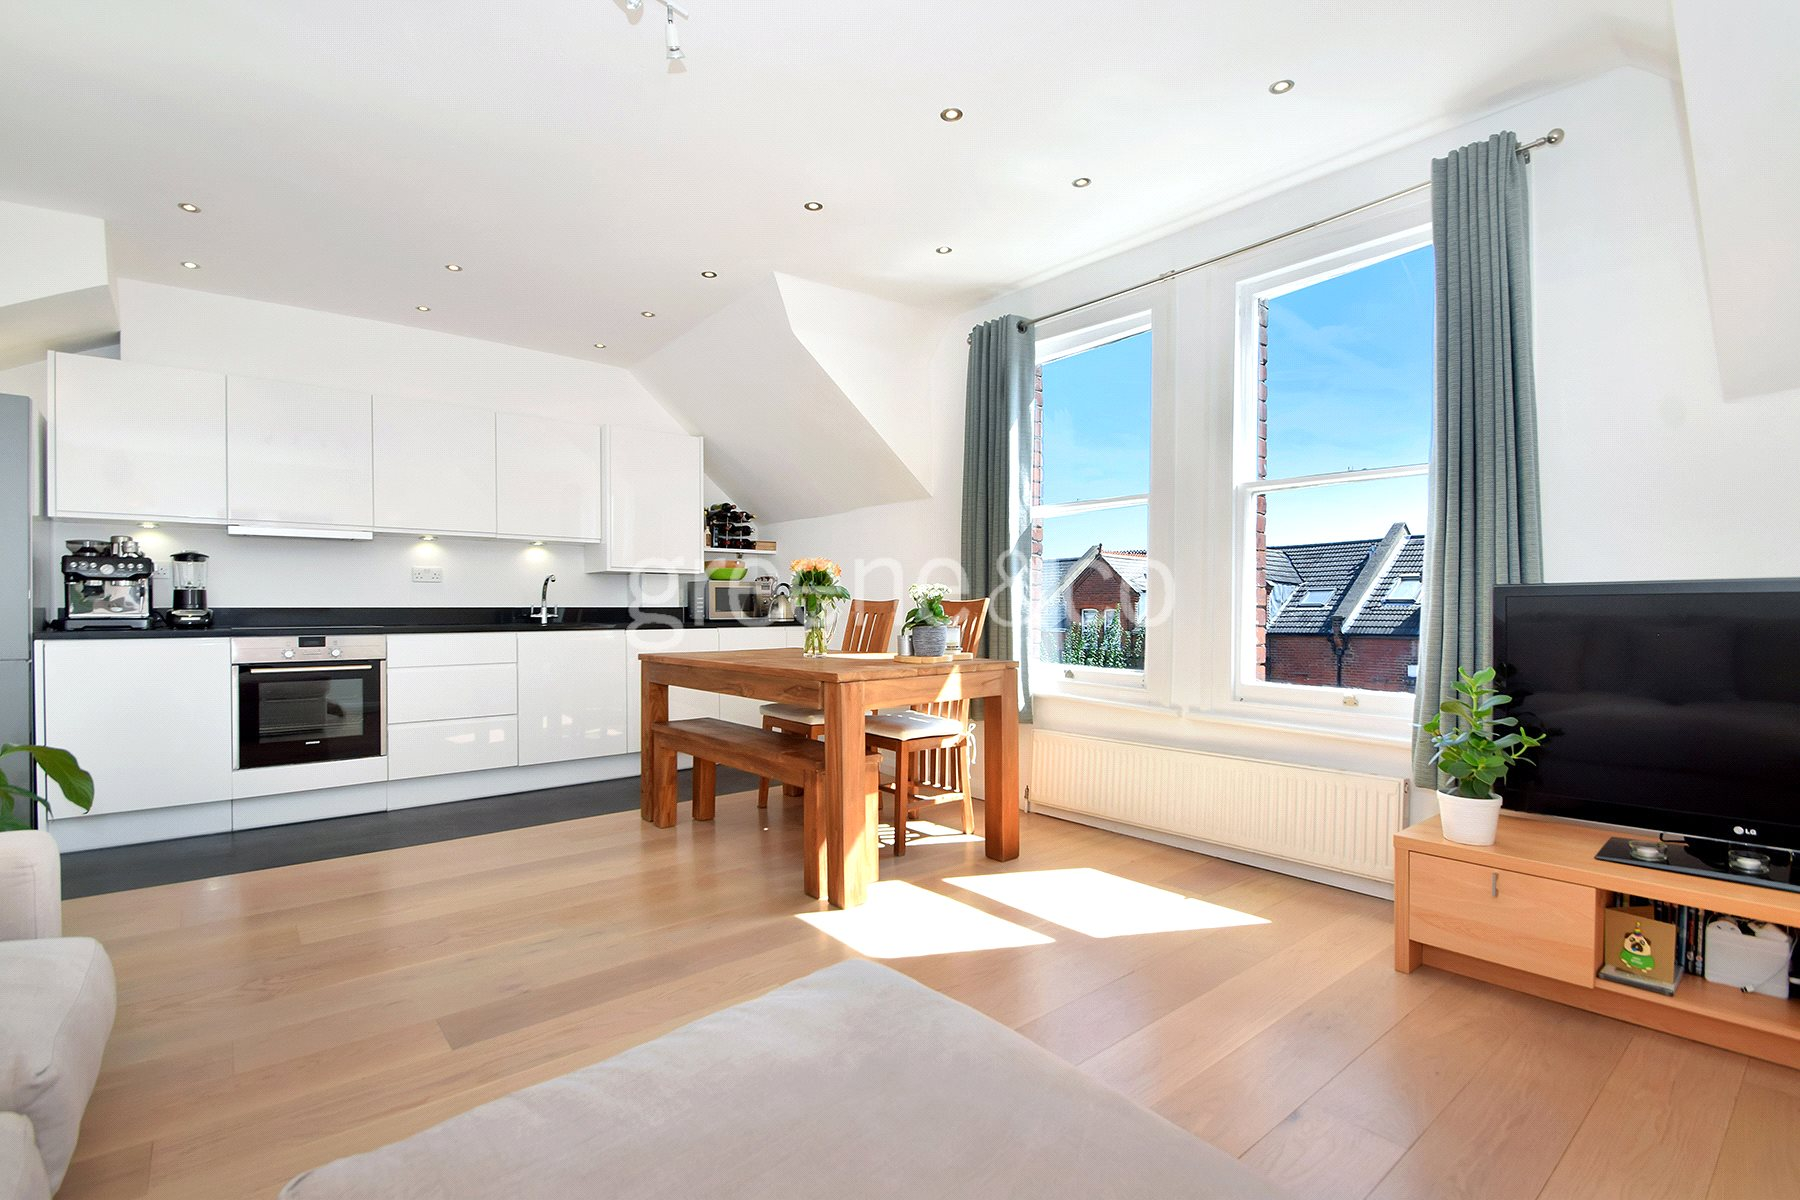 2 Bedrooms Maisonette Flat for sale in Plympton Road, Brondesbury, London, NW6